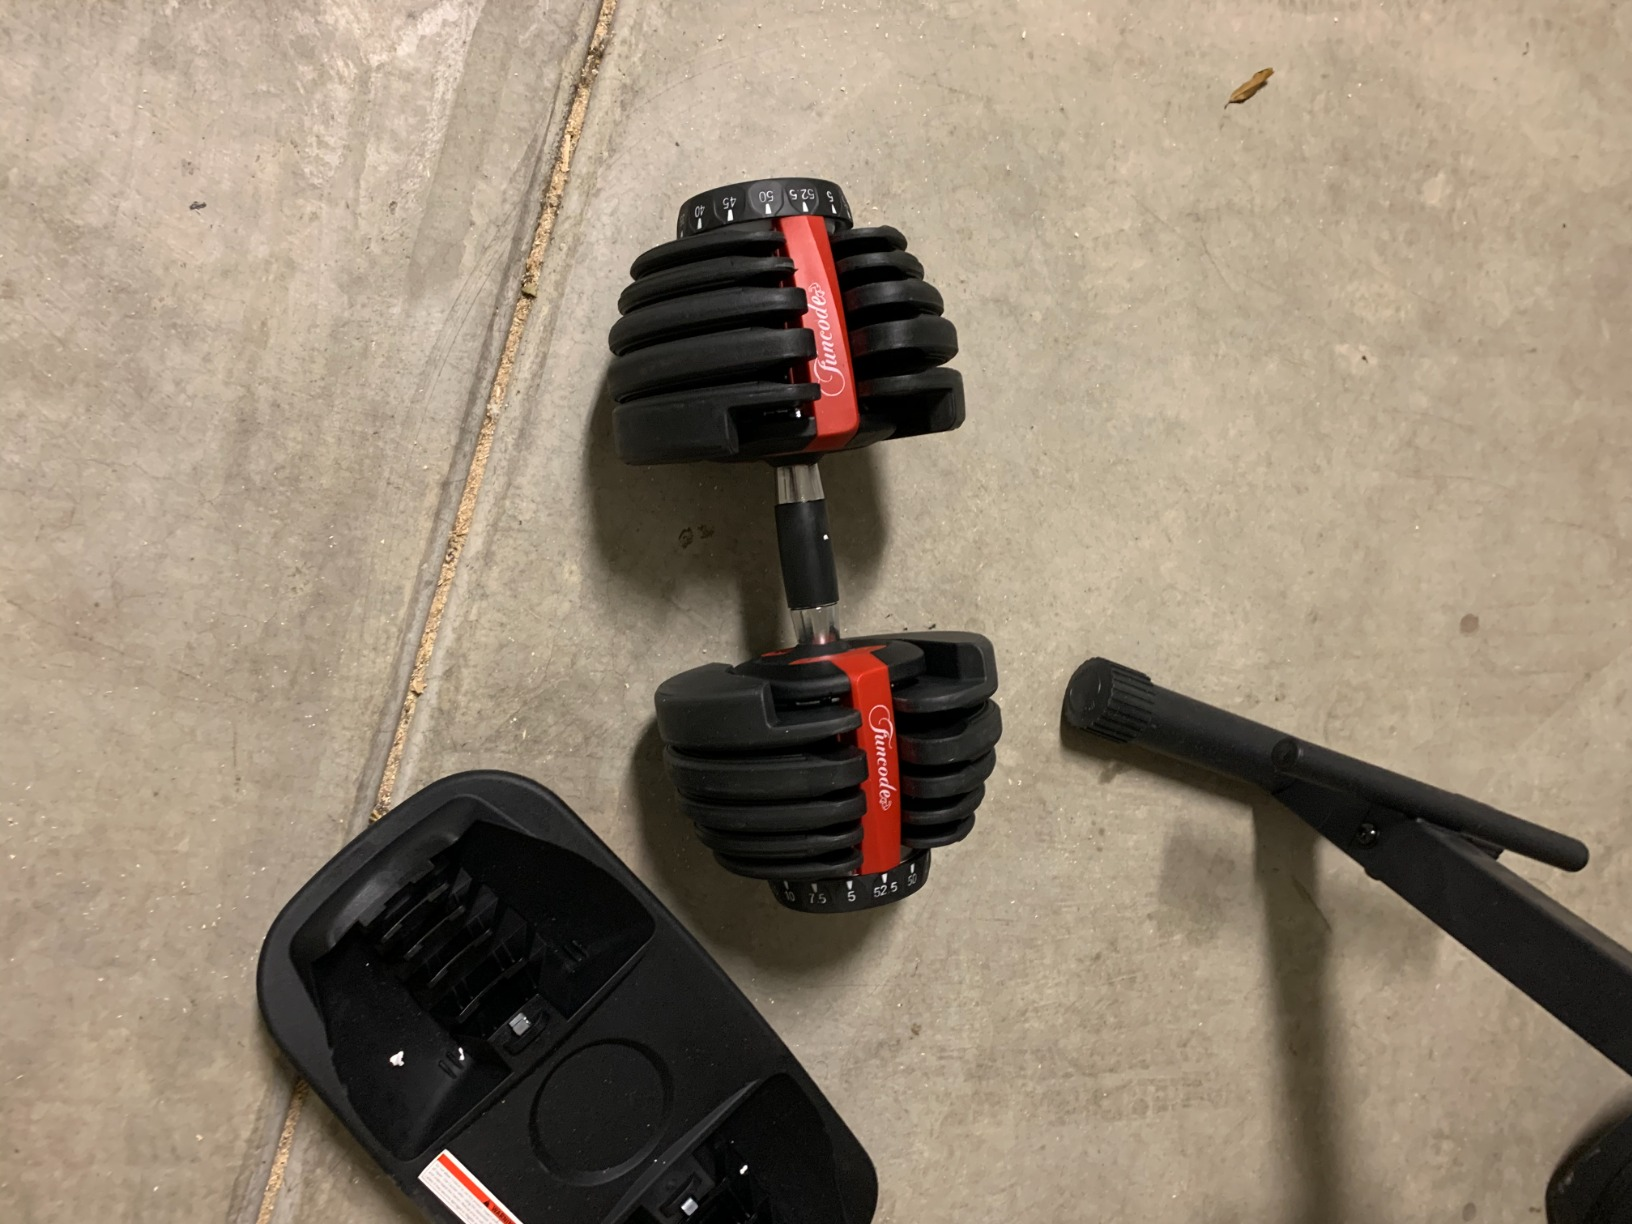 Funcode Adjustable Dumbbell, 5-52.5Lbs Weight Options, Anti-Slip Handle, All-Purpose, Home, Gym, Office photo review